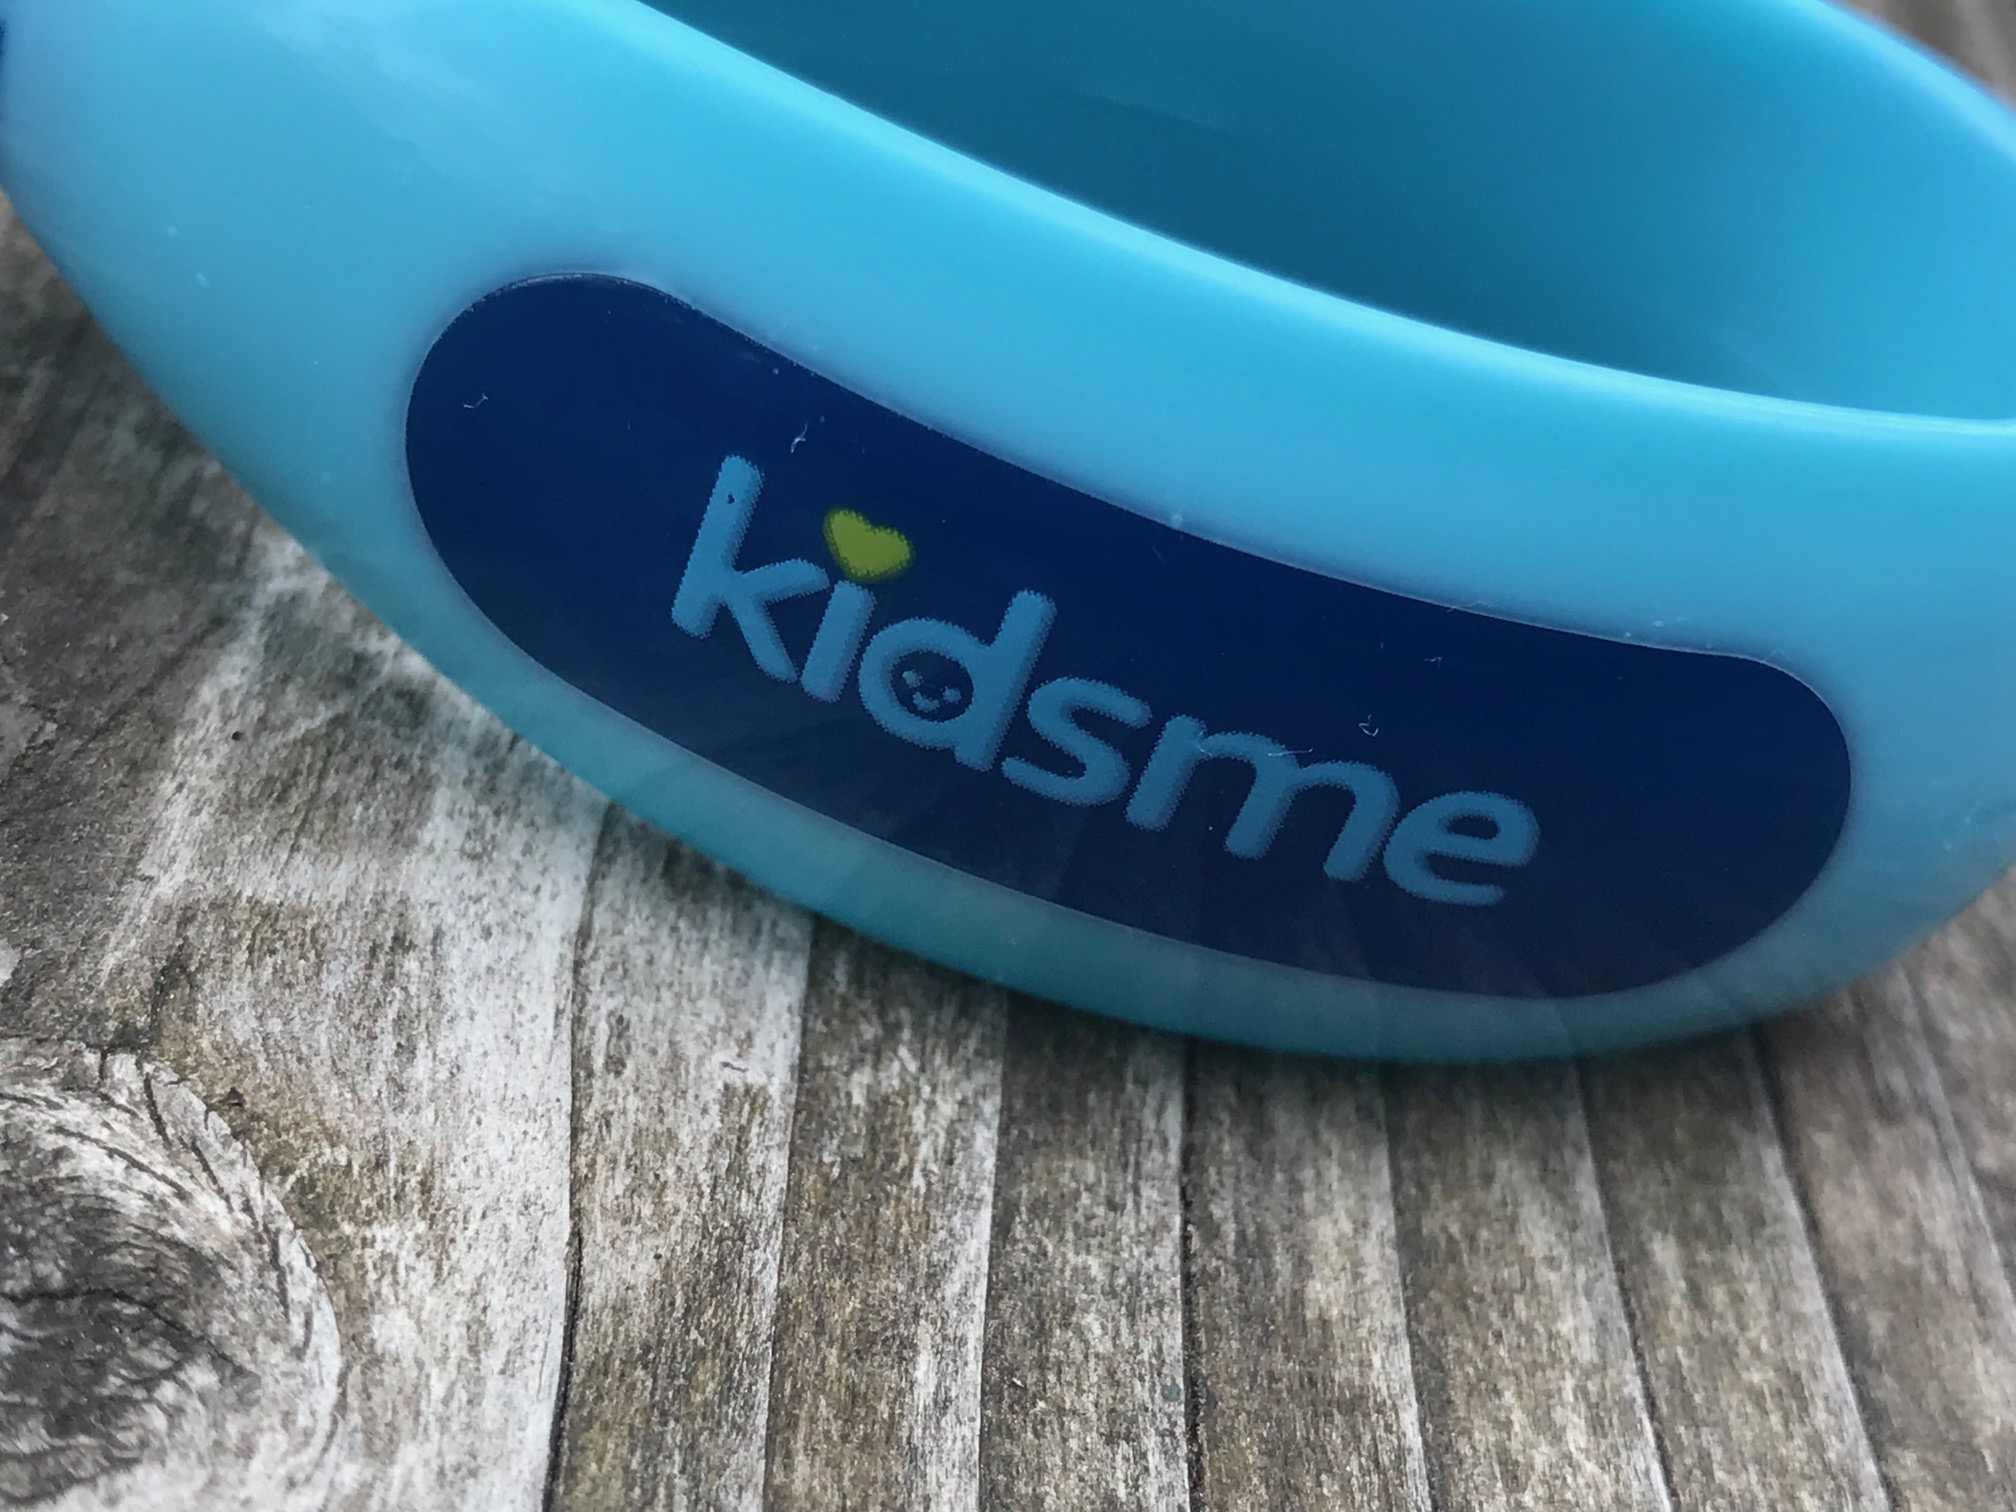 Kidsme My Turn Spoon Trainer Aqua, Blue. Non-detect for Lead, Cadmium, Mercury, Antimony and Arsenic.